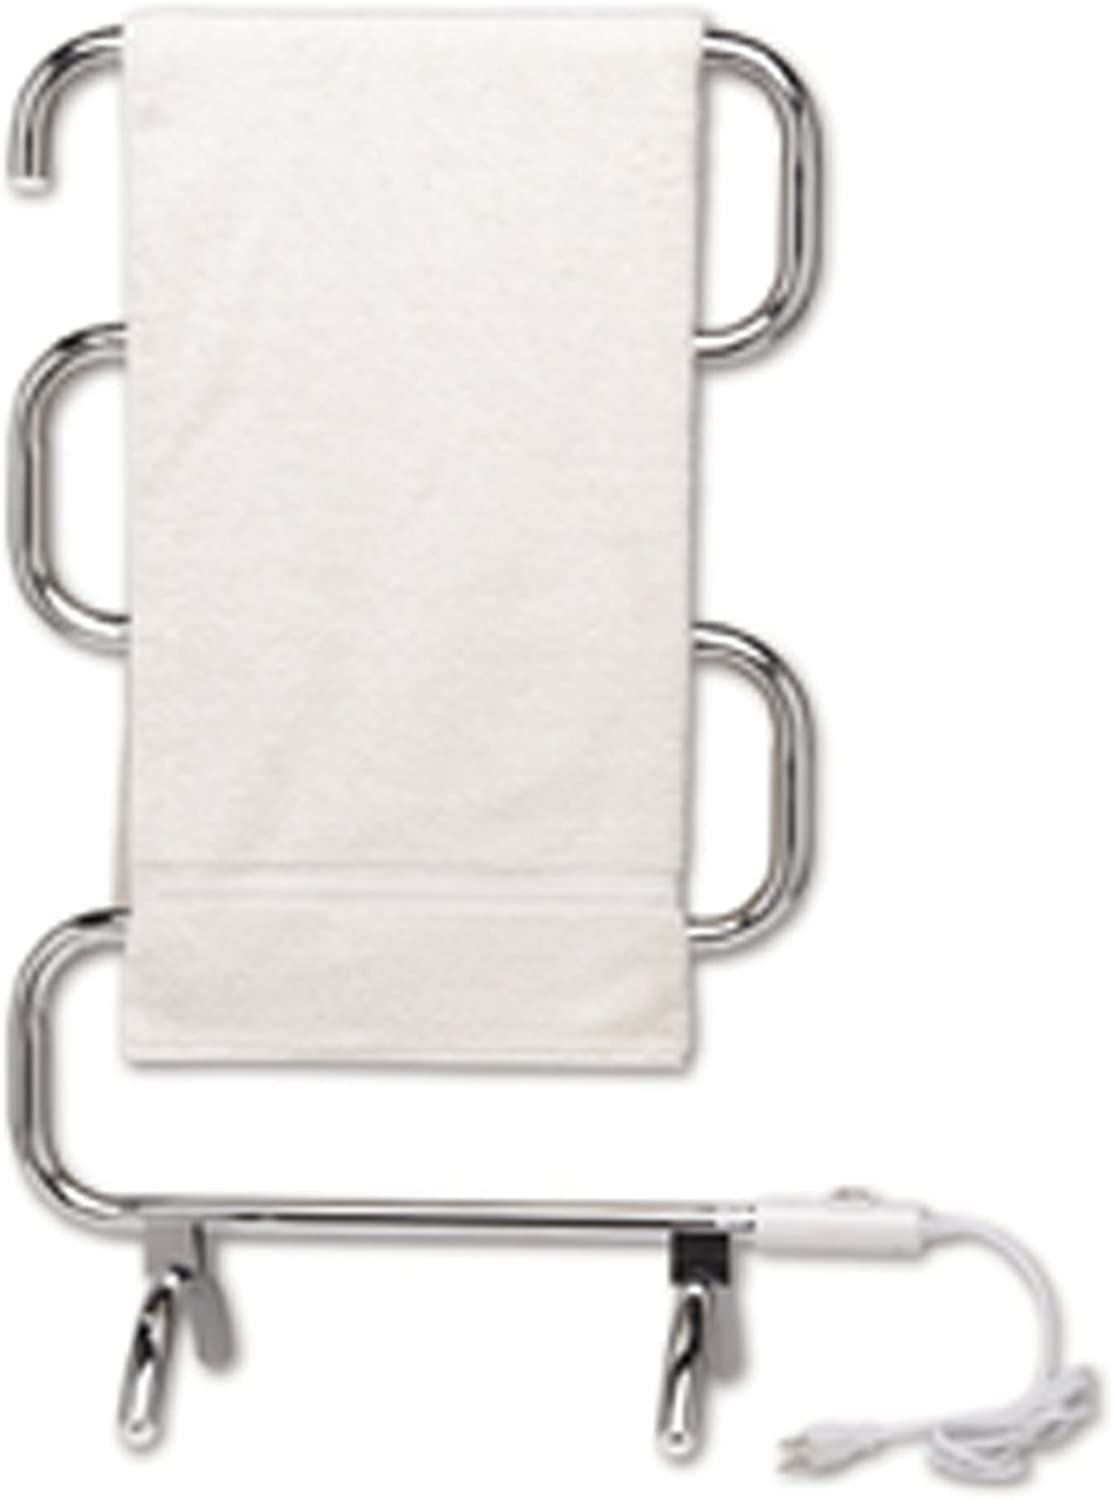 Warmrails HCC Classic Wall Mounted Floor Standing Towel Warmer, Chrome